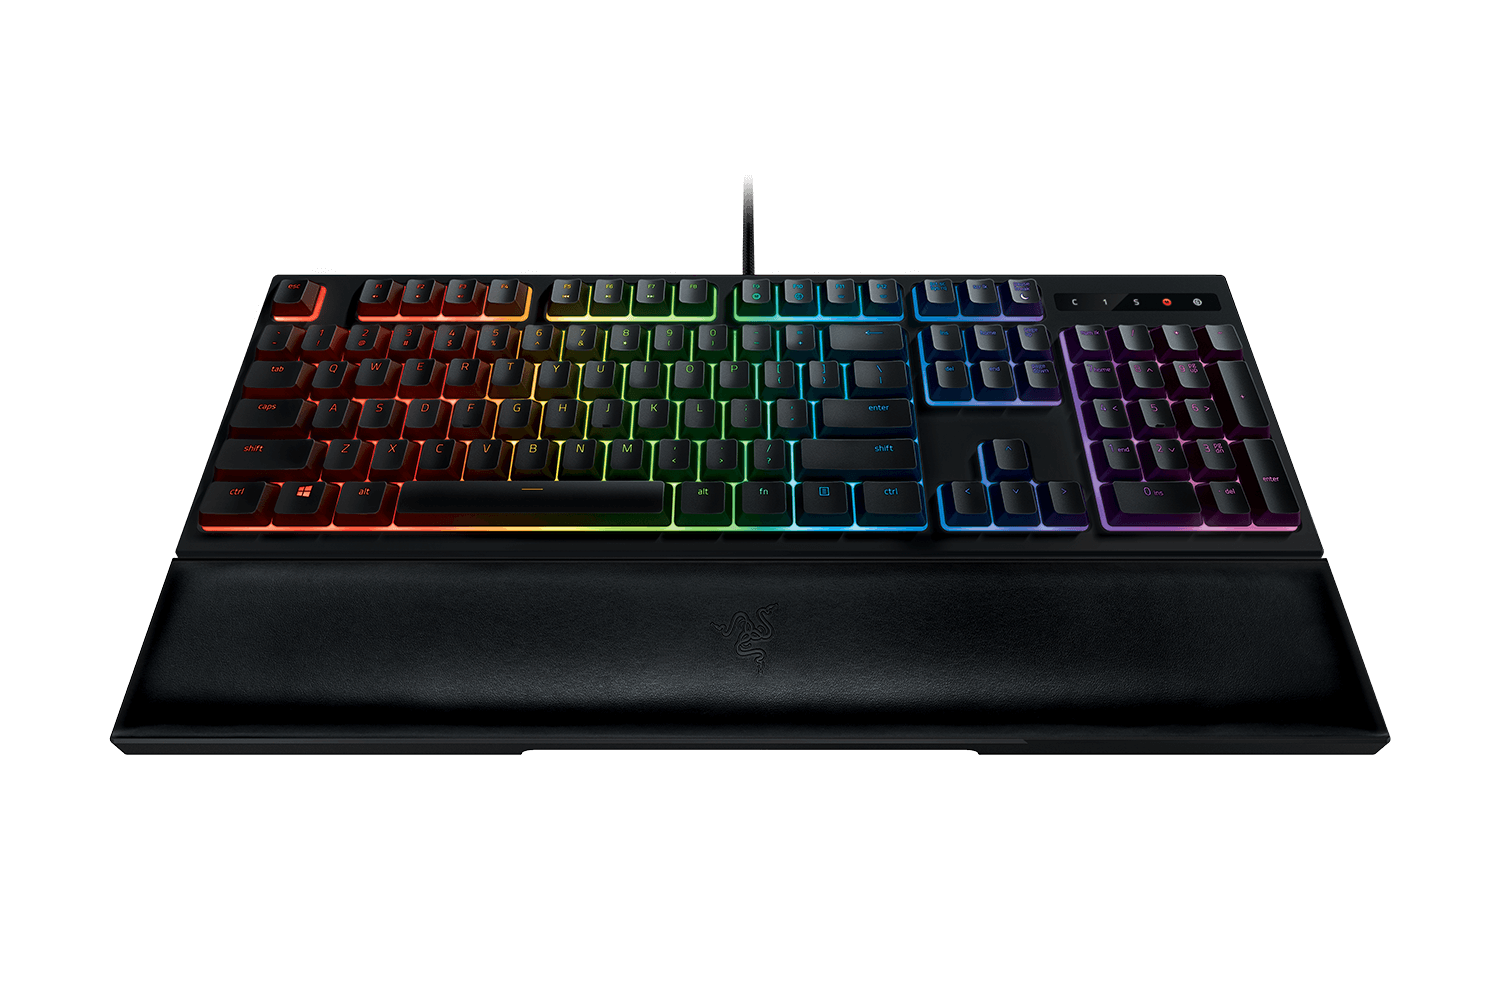 The clicky Razer Ornata Chroma keyboard.